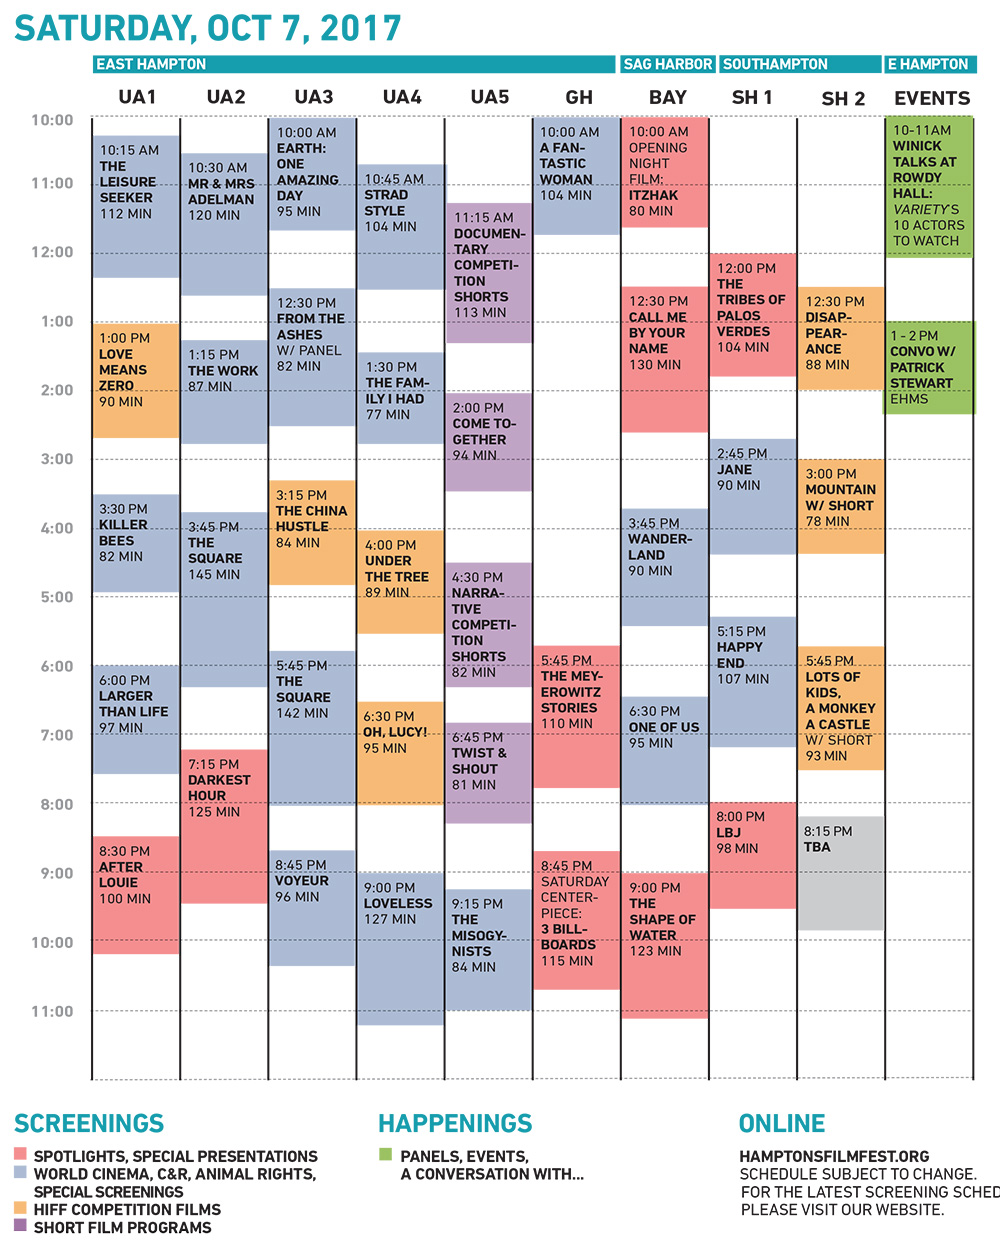 HIFF25 Saturday Grid 10-6